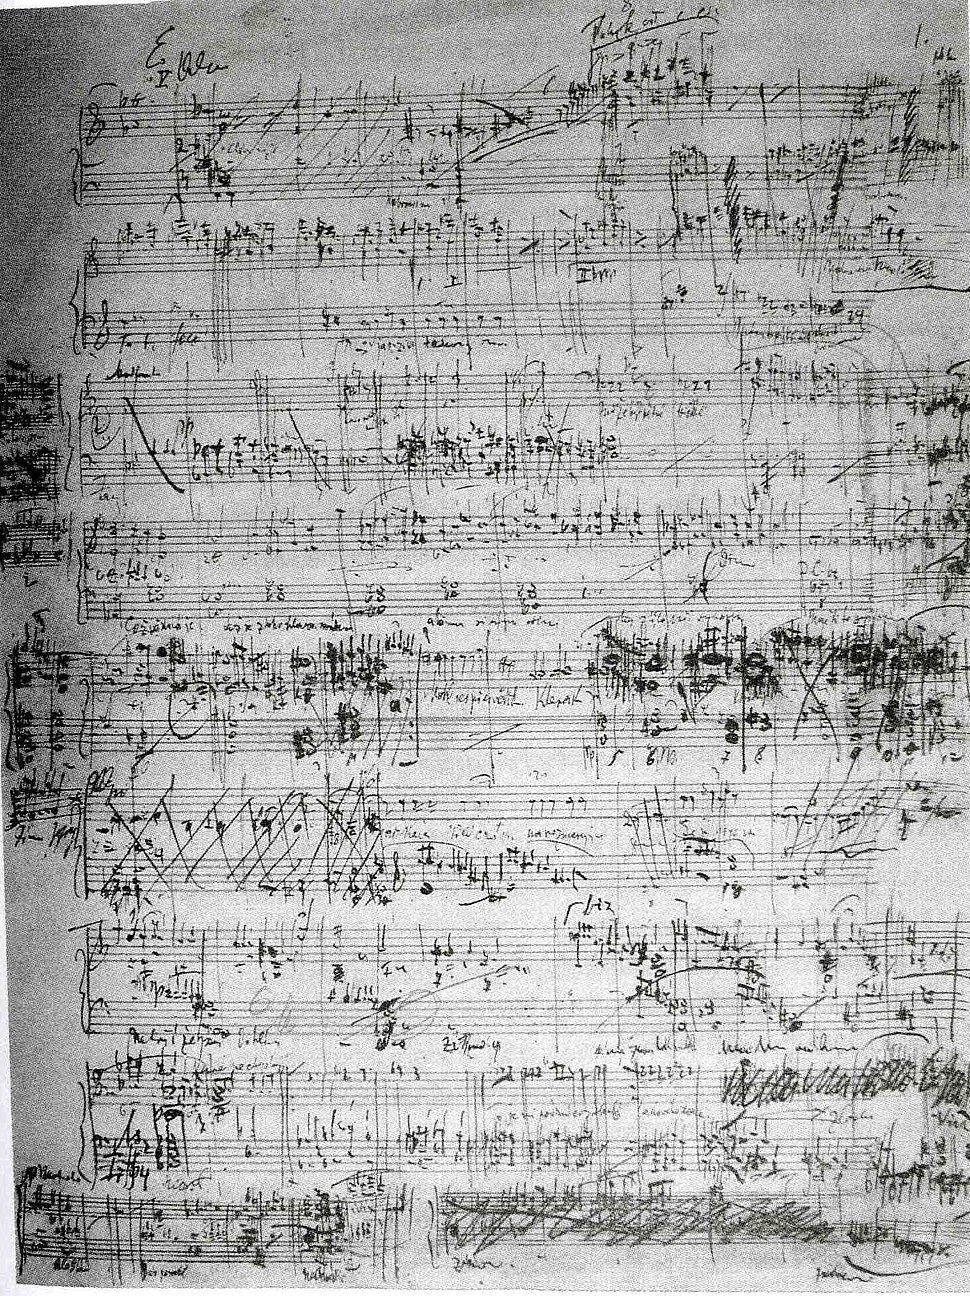 Jen%C5%AFfa - the only well-preserved page of the score